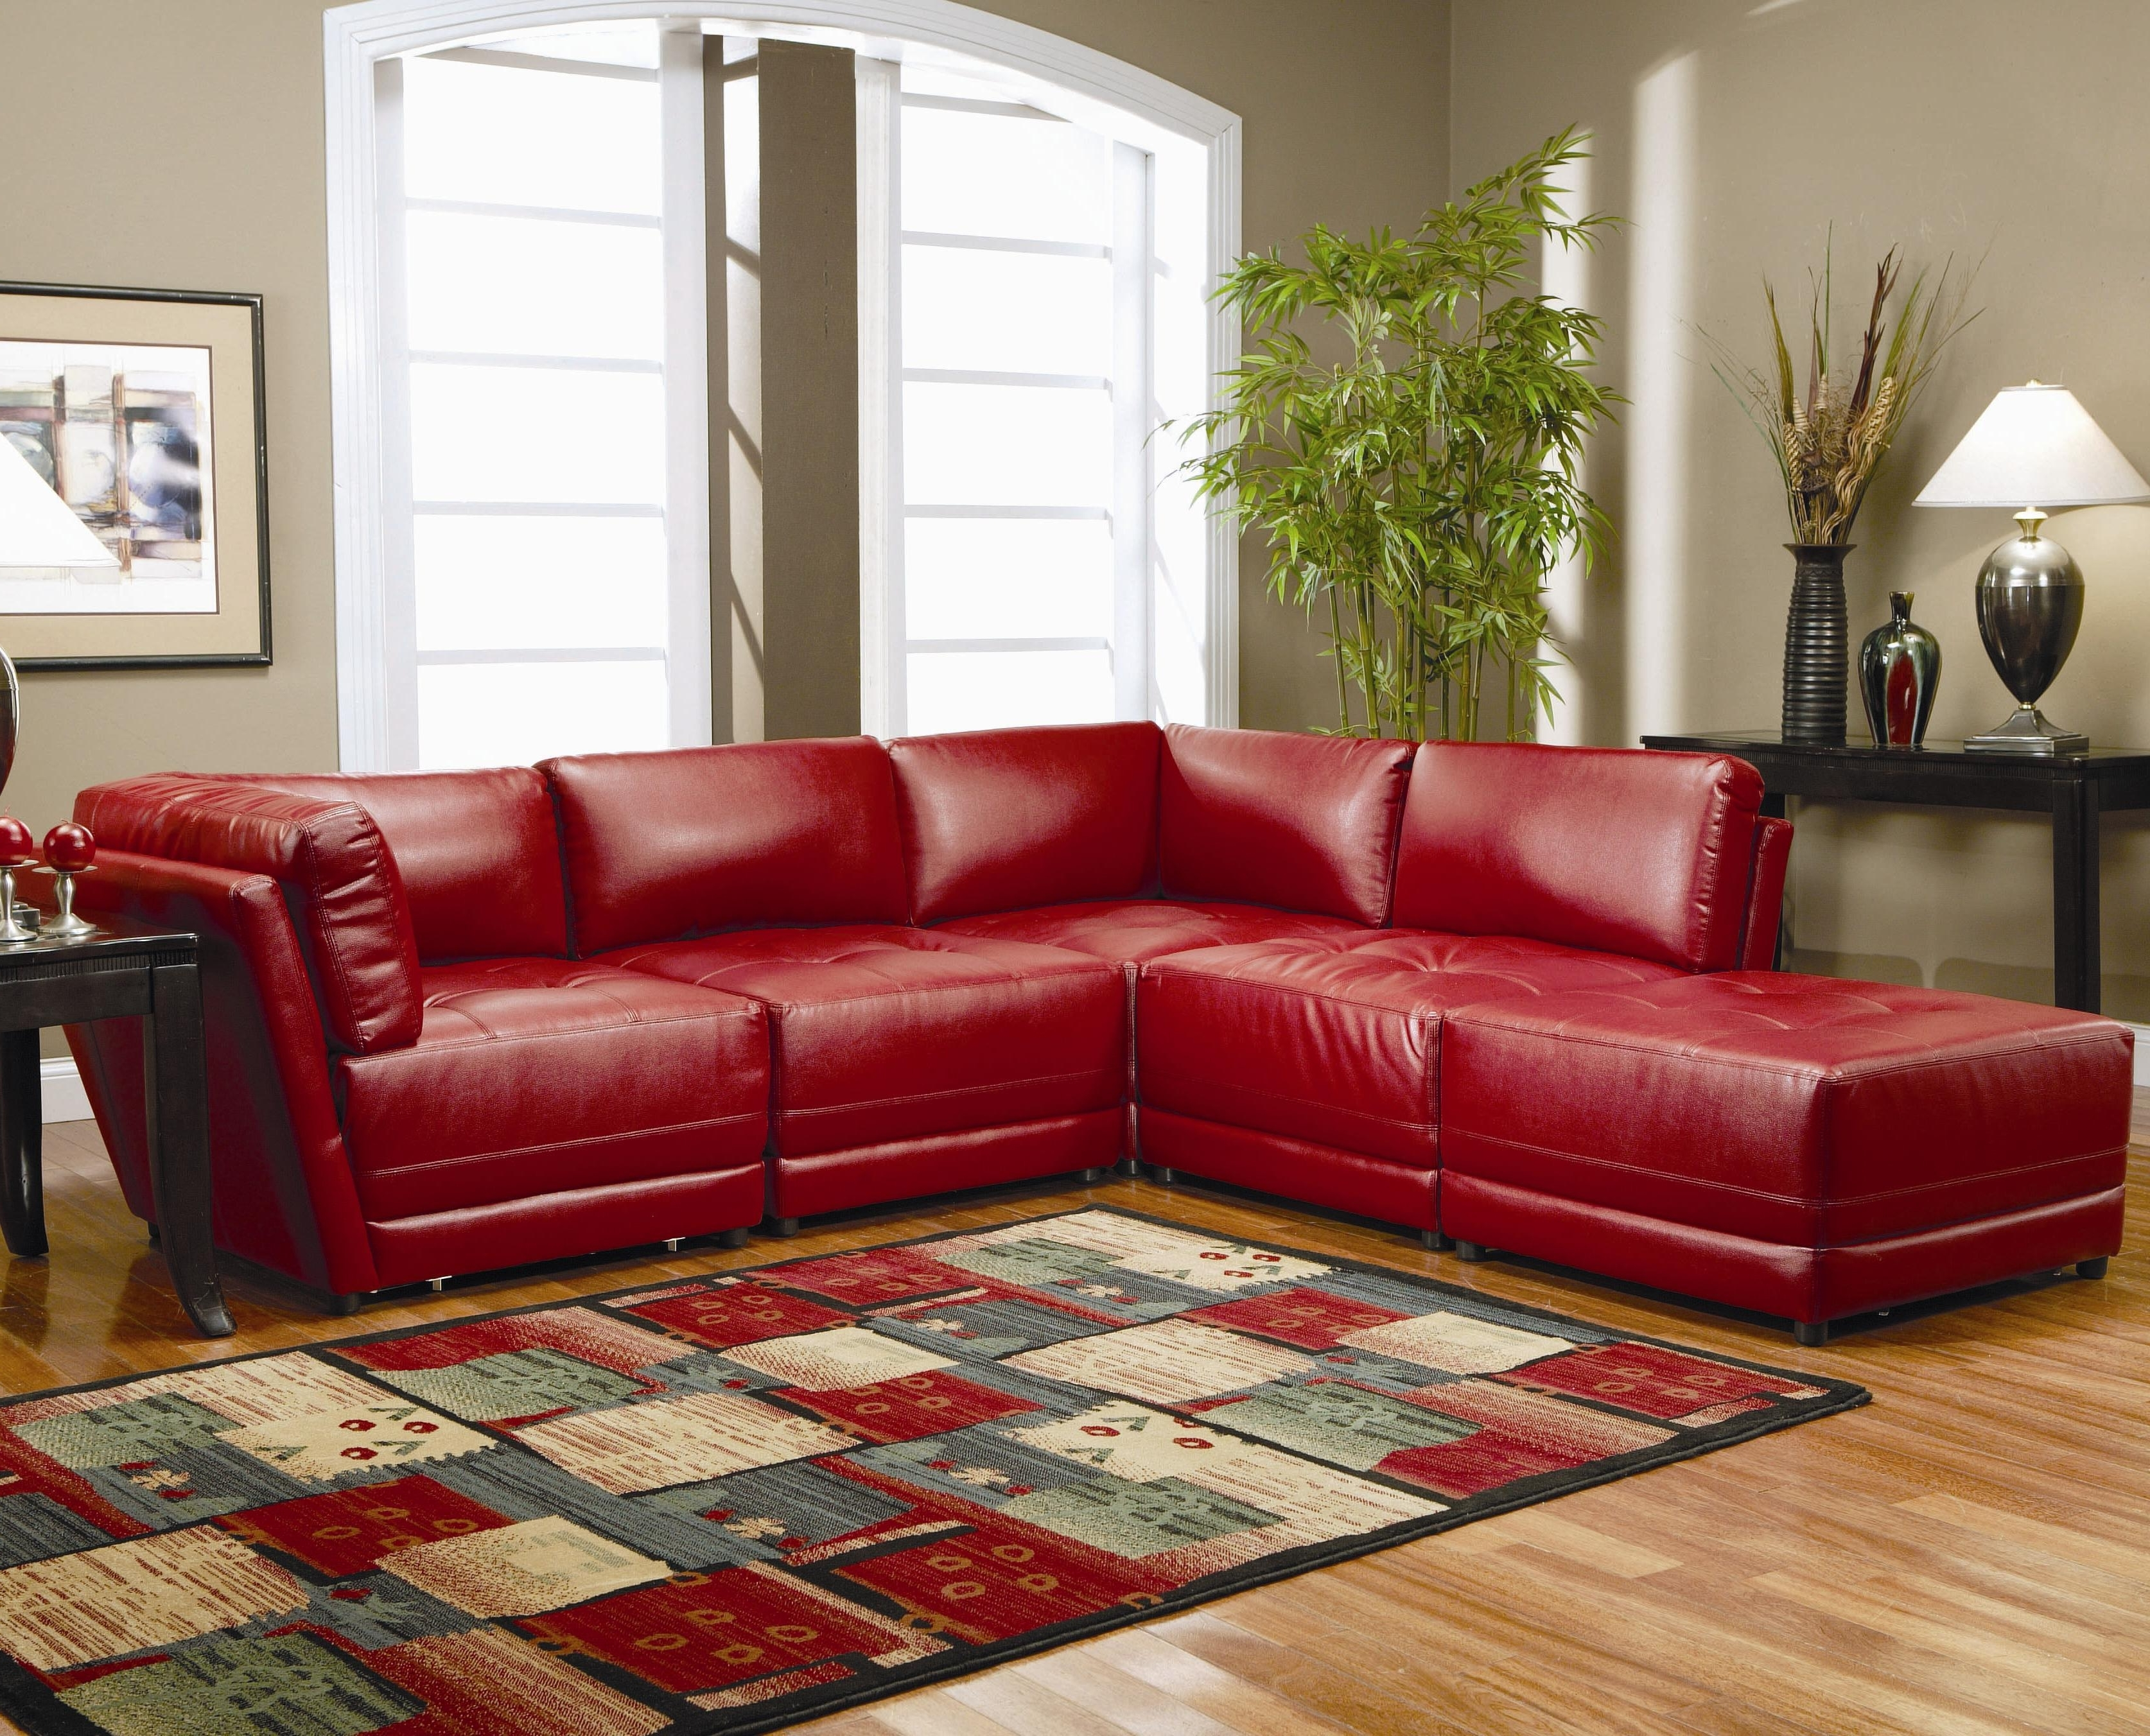 Latest Red Faux Leather Sectionals Intended For Warm Red Leather Sectional L Shaped Sofa Design Ideas For Living (View 6 of 15)